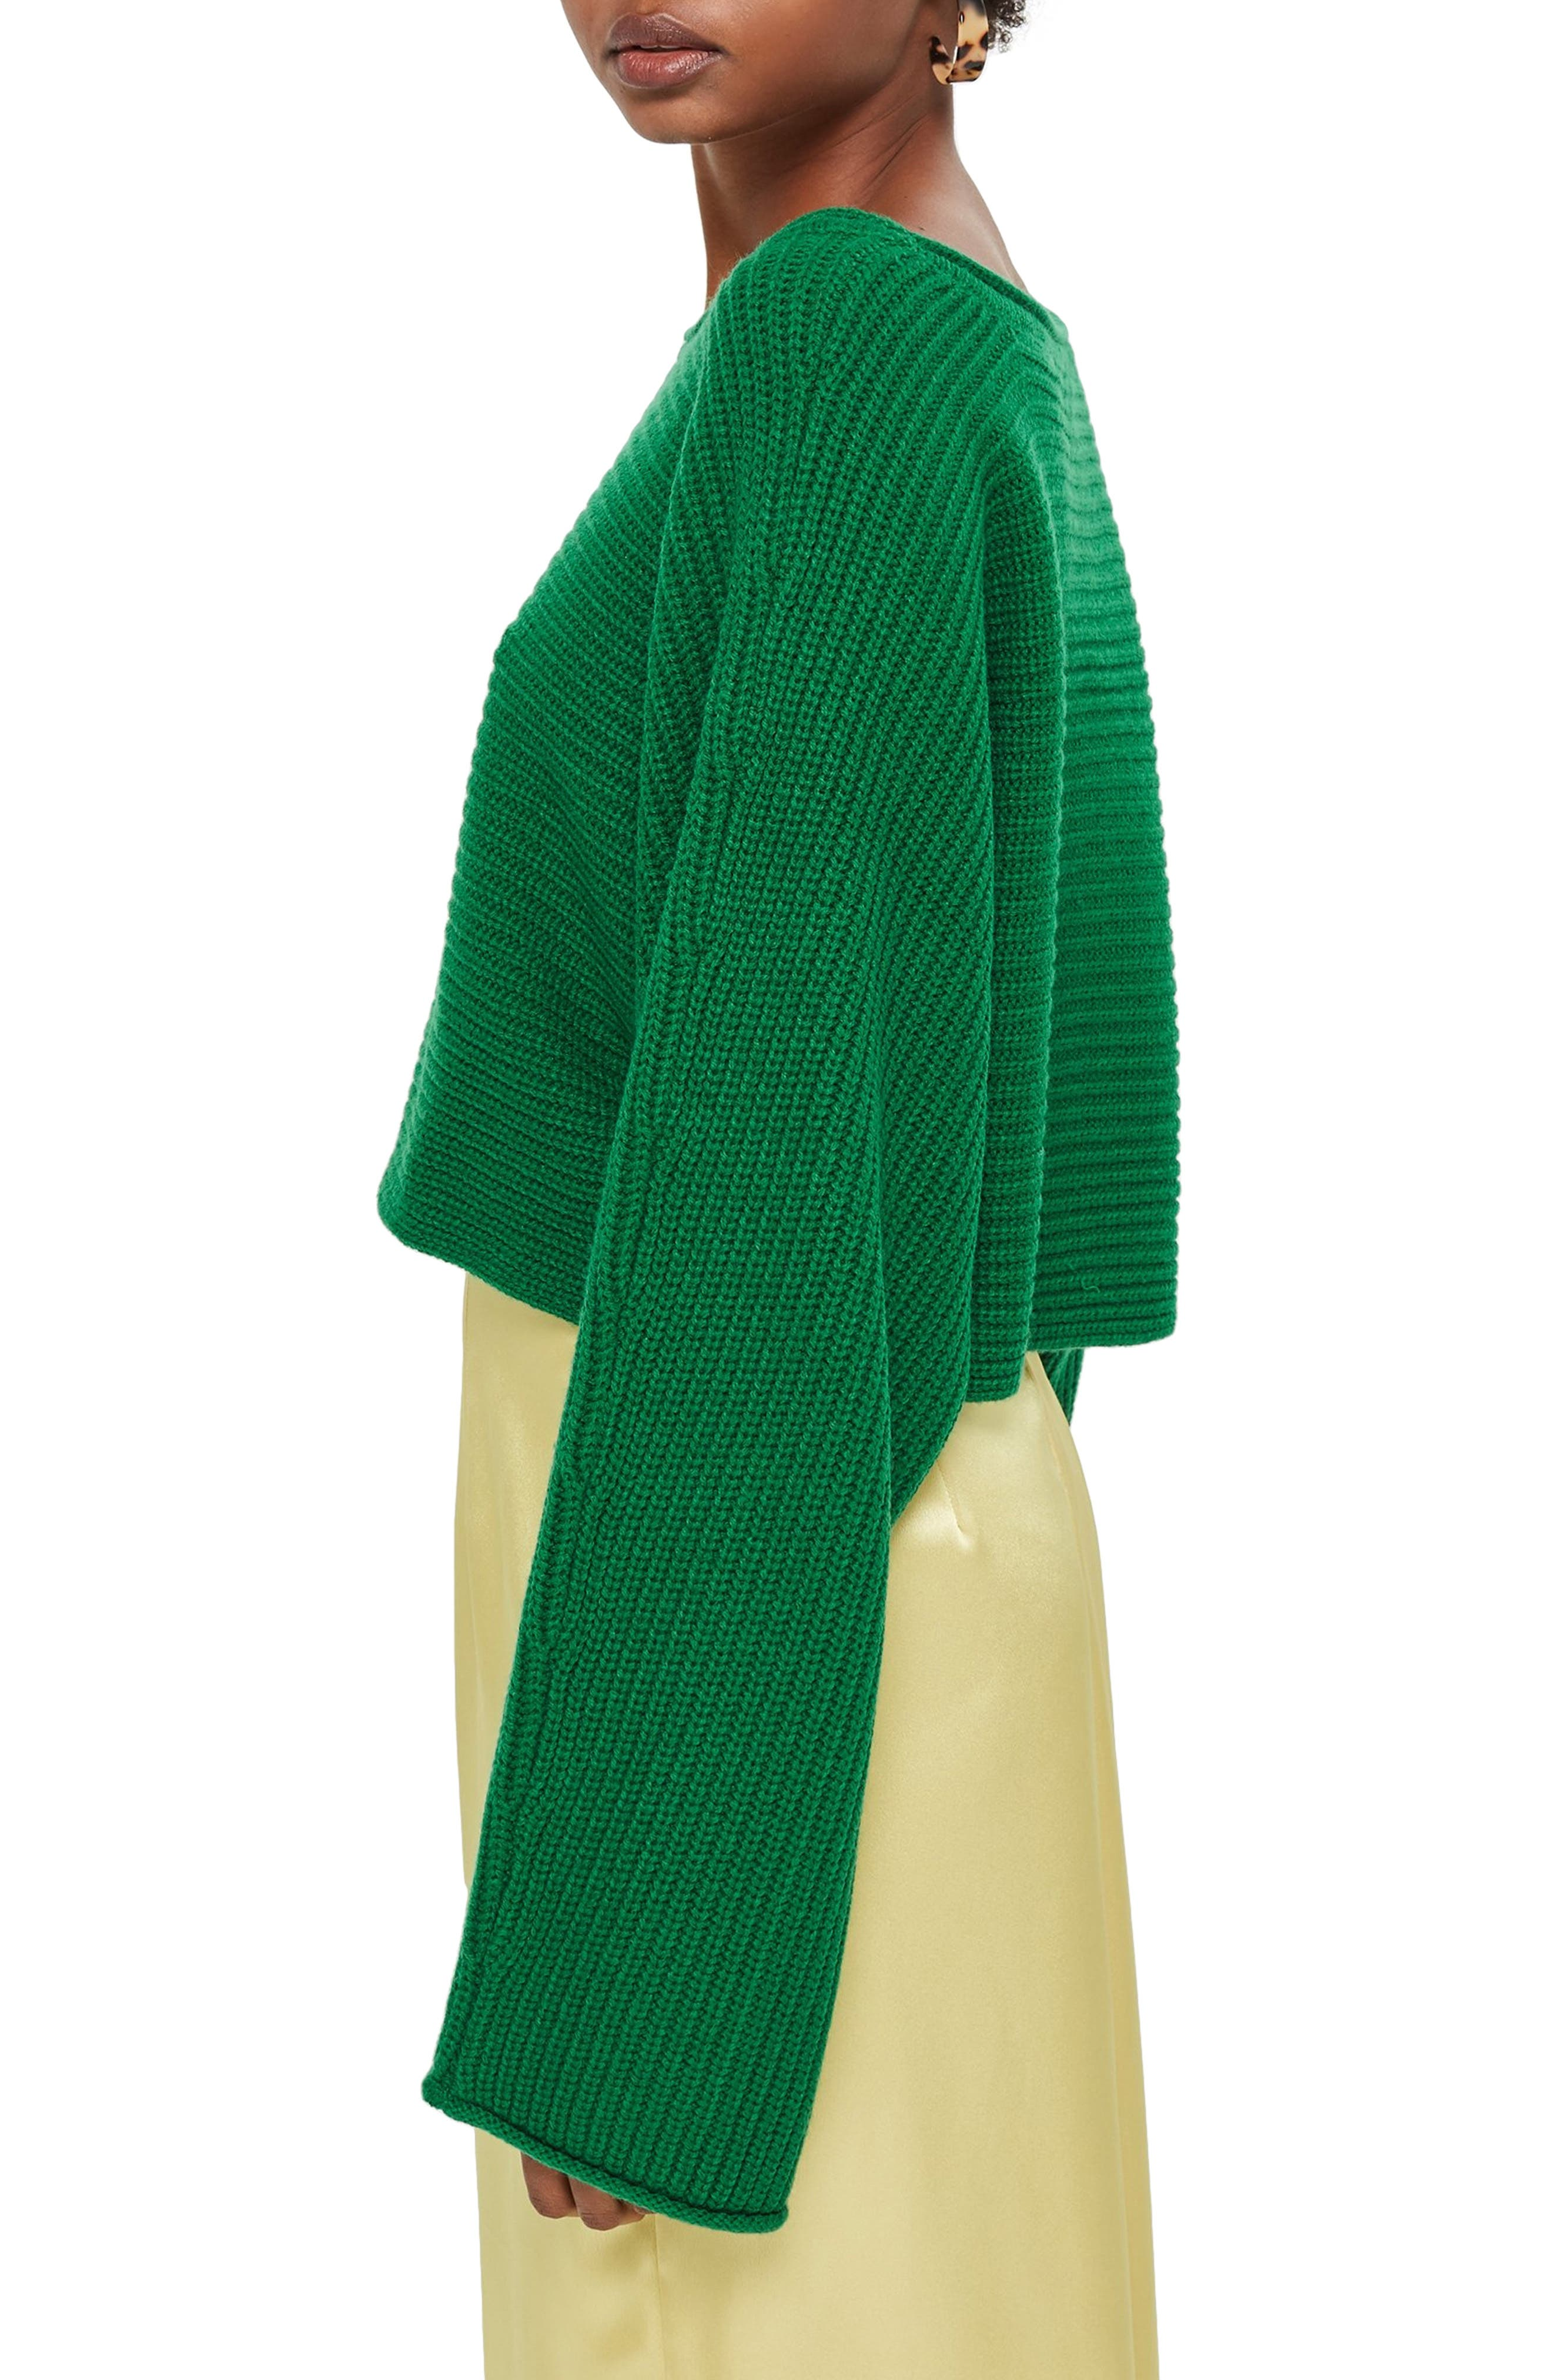 TOPSHOP, Roll Edge Crop Sweater, Alternate thumbnail 3, color, 300